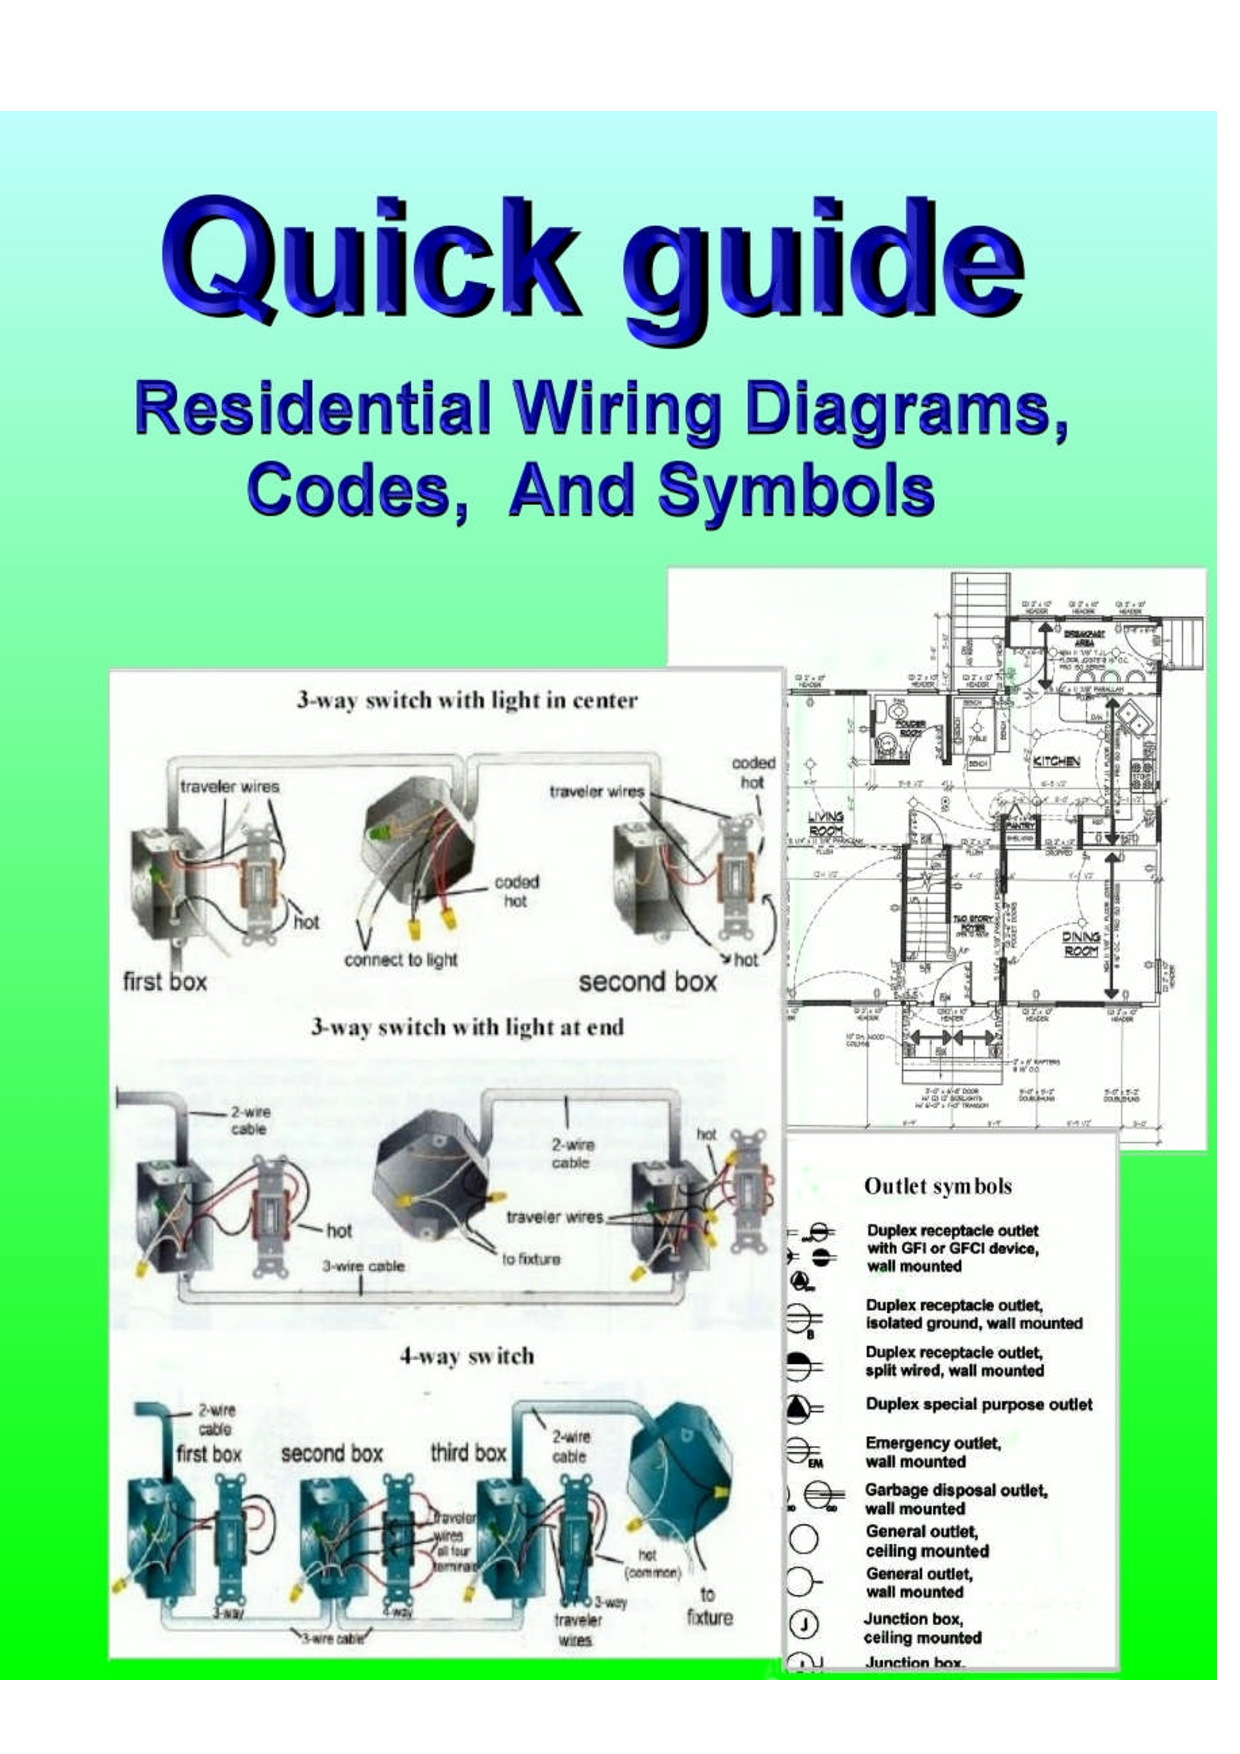 hight resolution of home electrical wiring diagrams pdf download legal documents 39 wiring diagram for house as well as home electrical outlet wiring